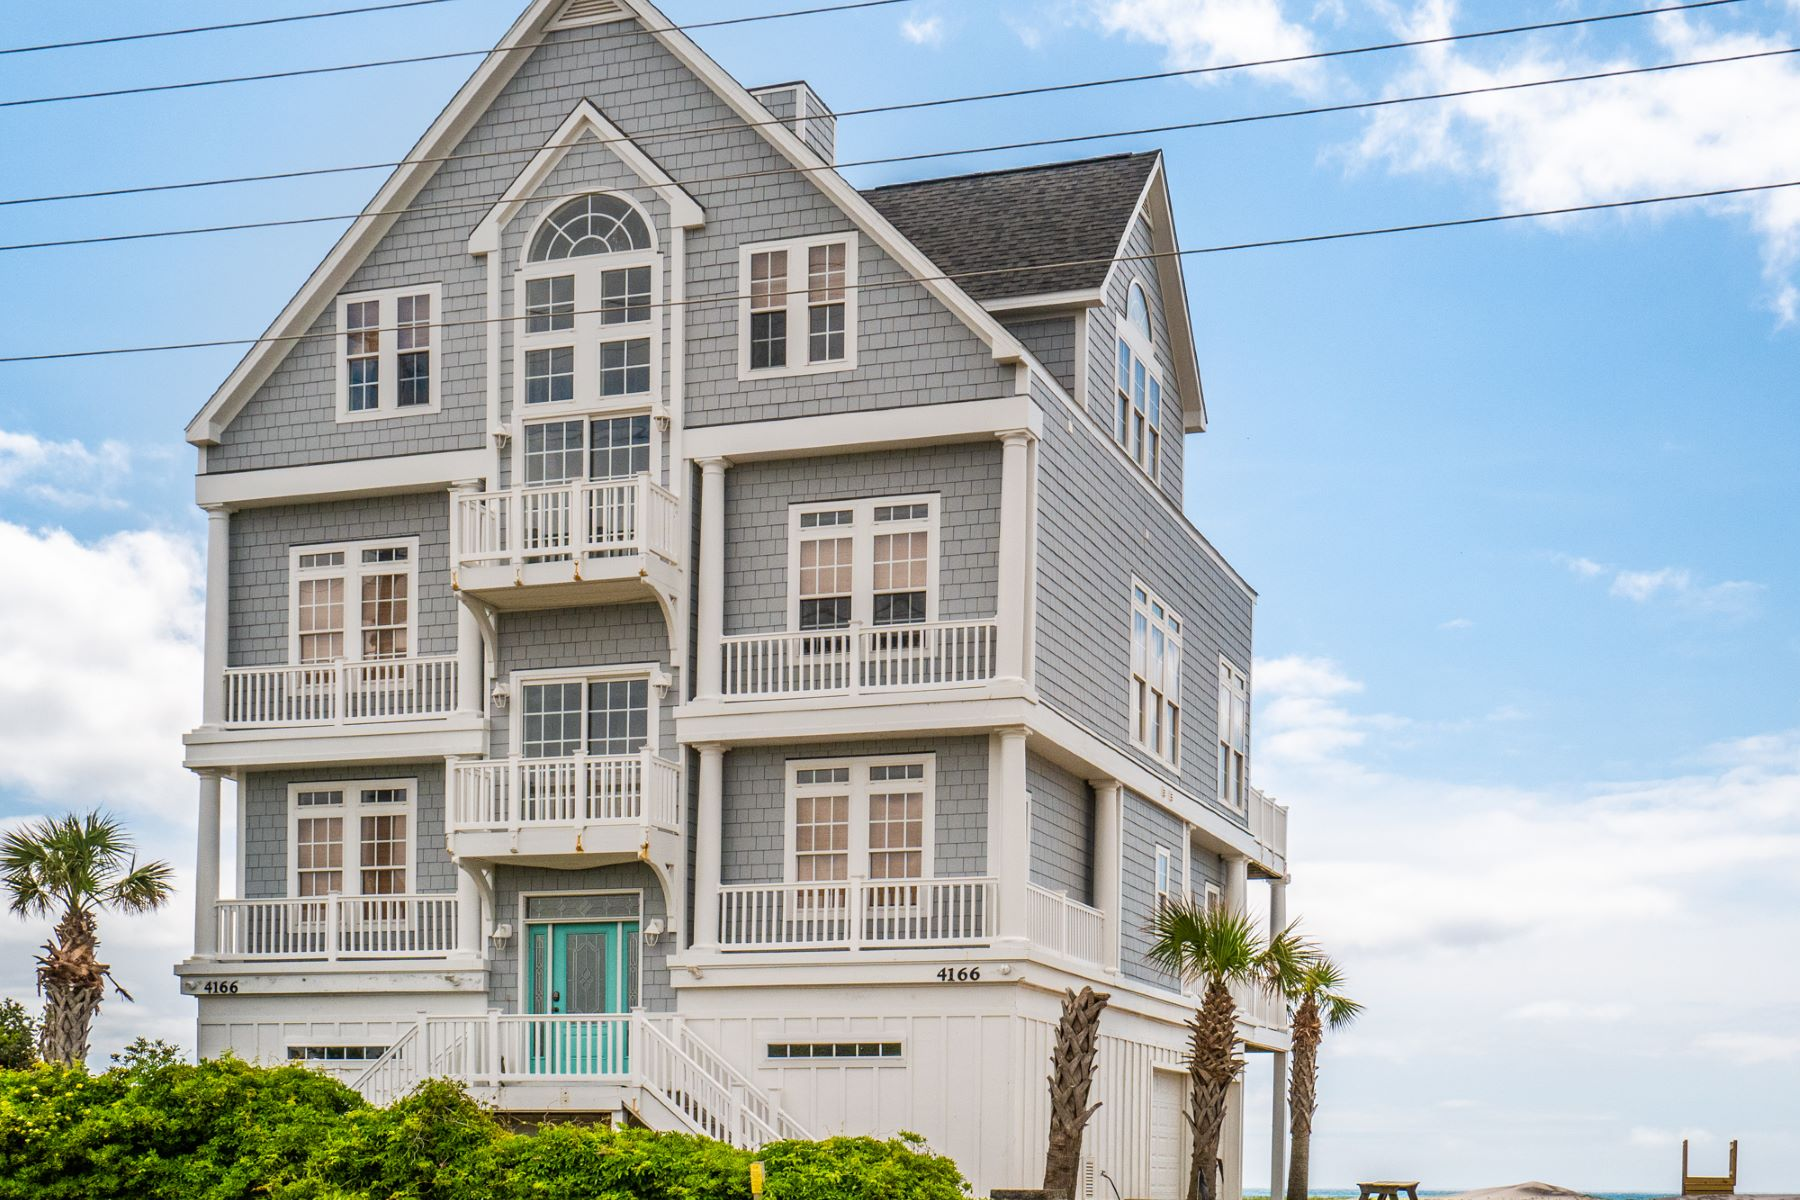 Single Family Homes for Sale at Magnificent Oceanfront Getaway in North Topsail 4166 Island Drive N Topsail Beach, North Carolina 28460 United States